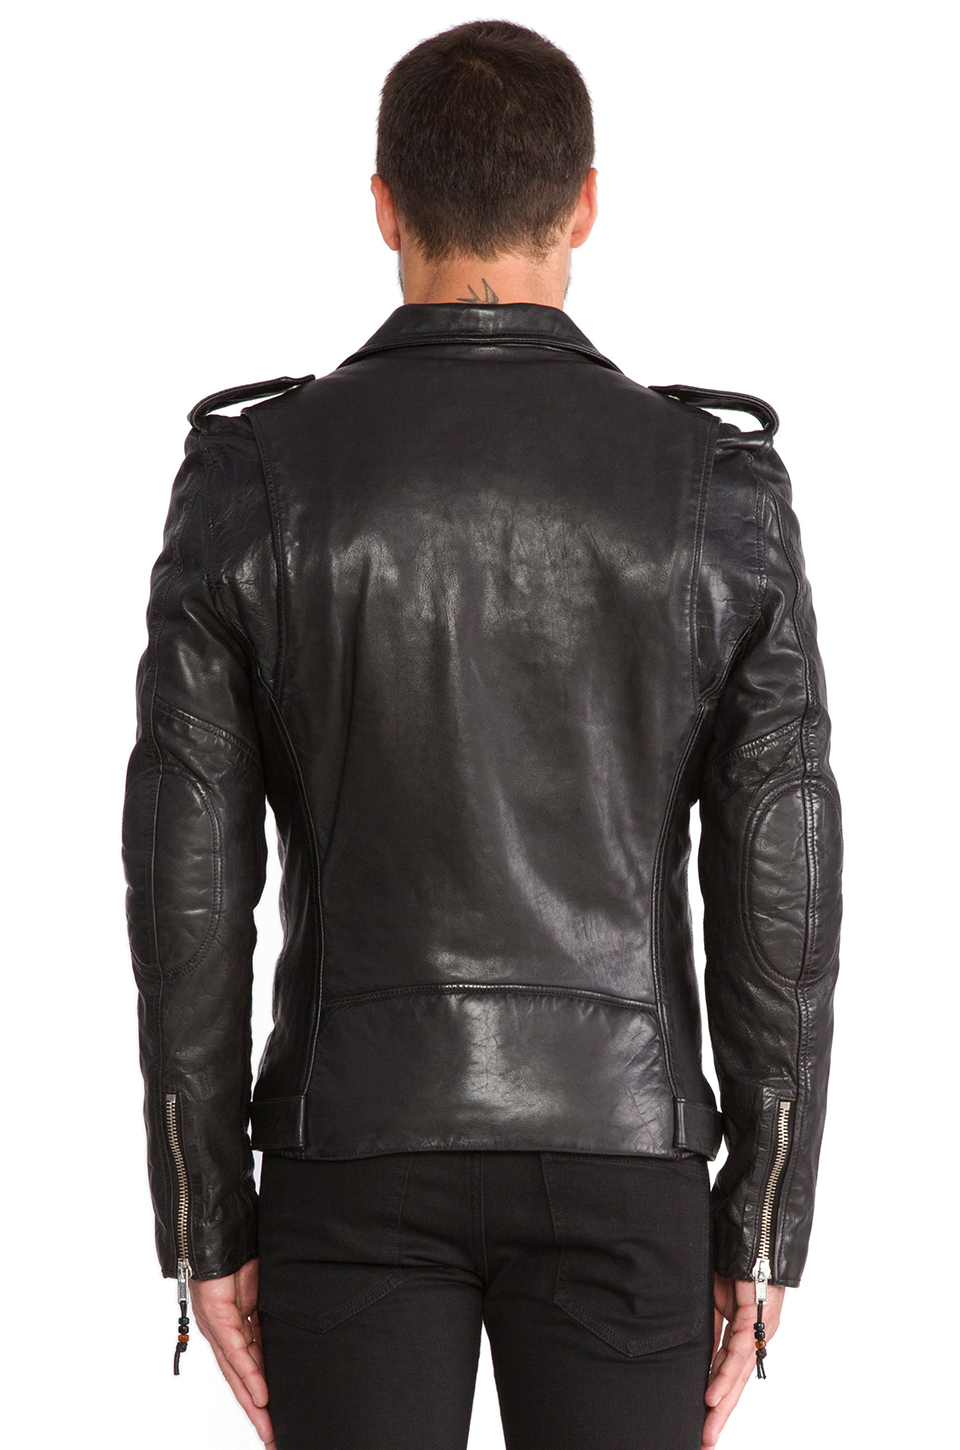 Leather Jacket Cleaning